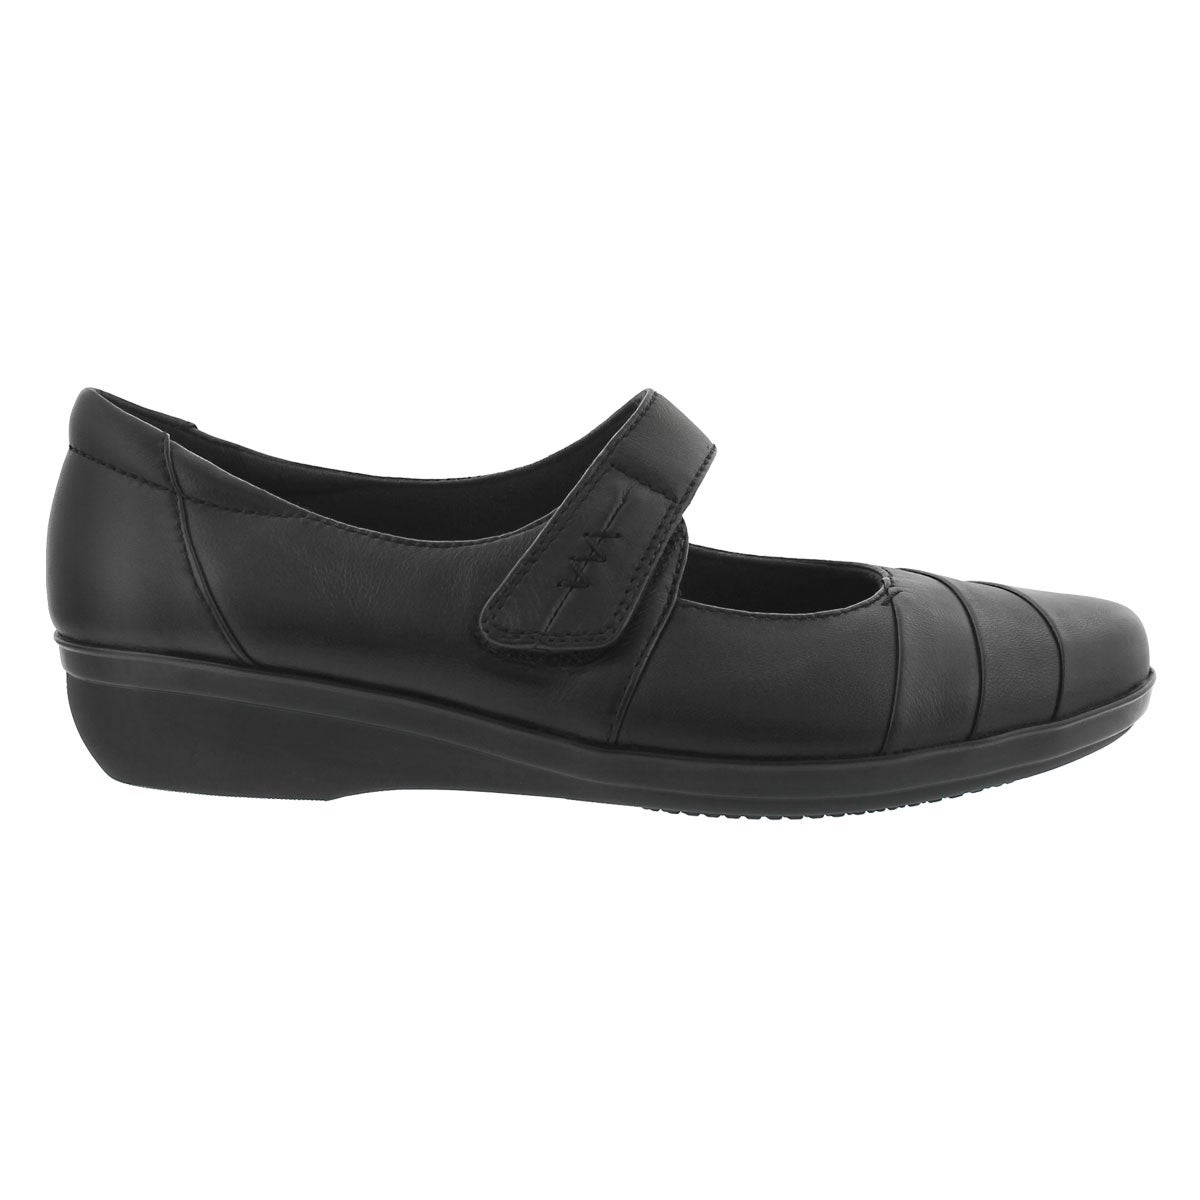 Lds Everlay Kennon blk mary jane- WIDE